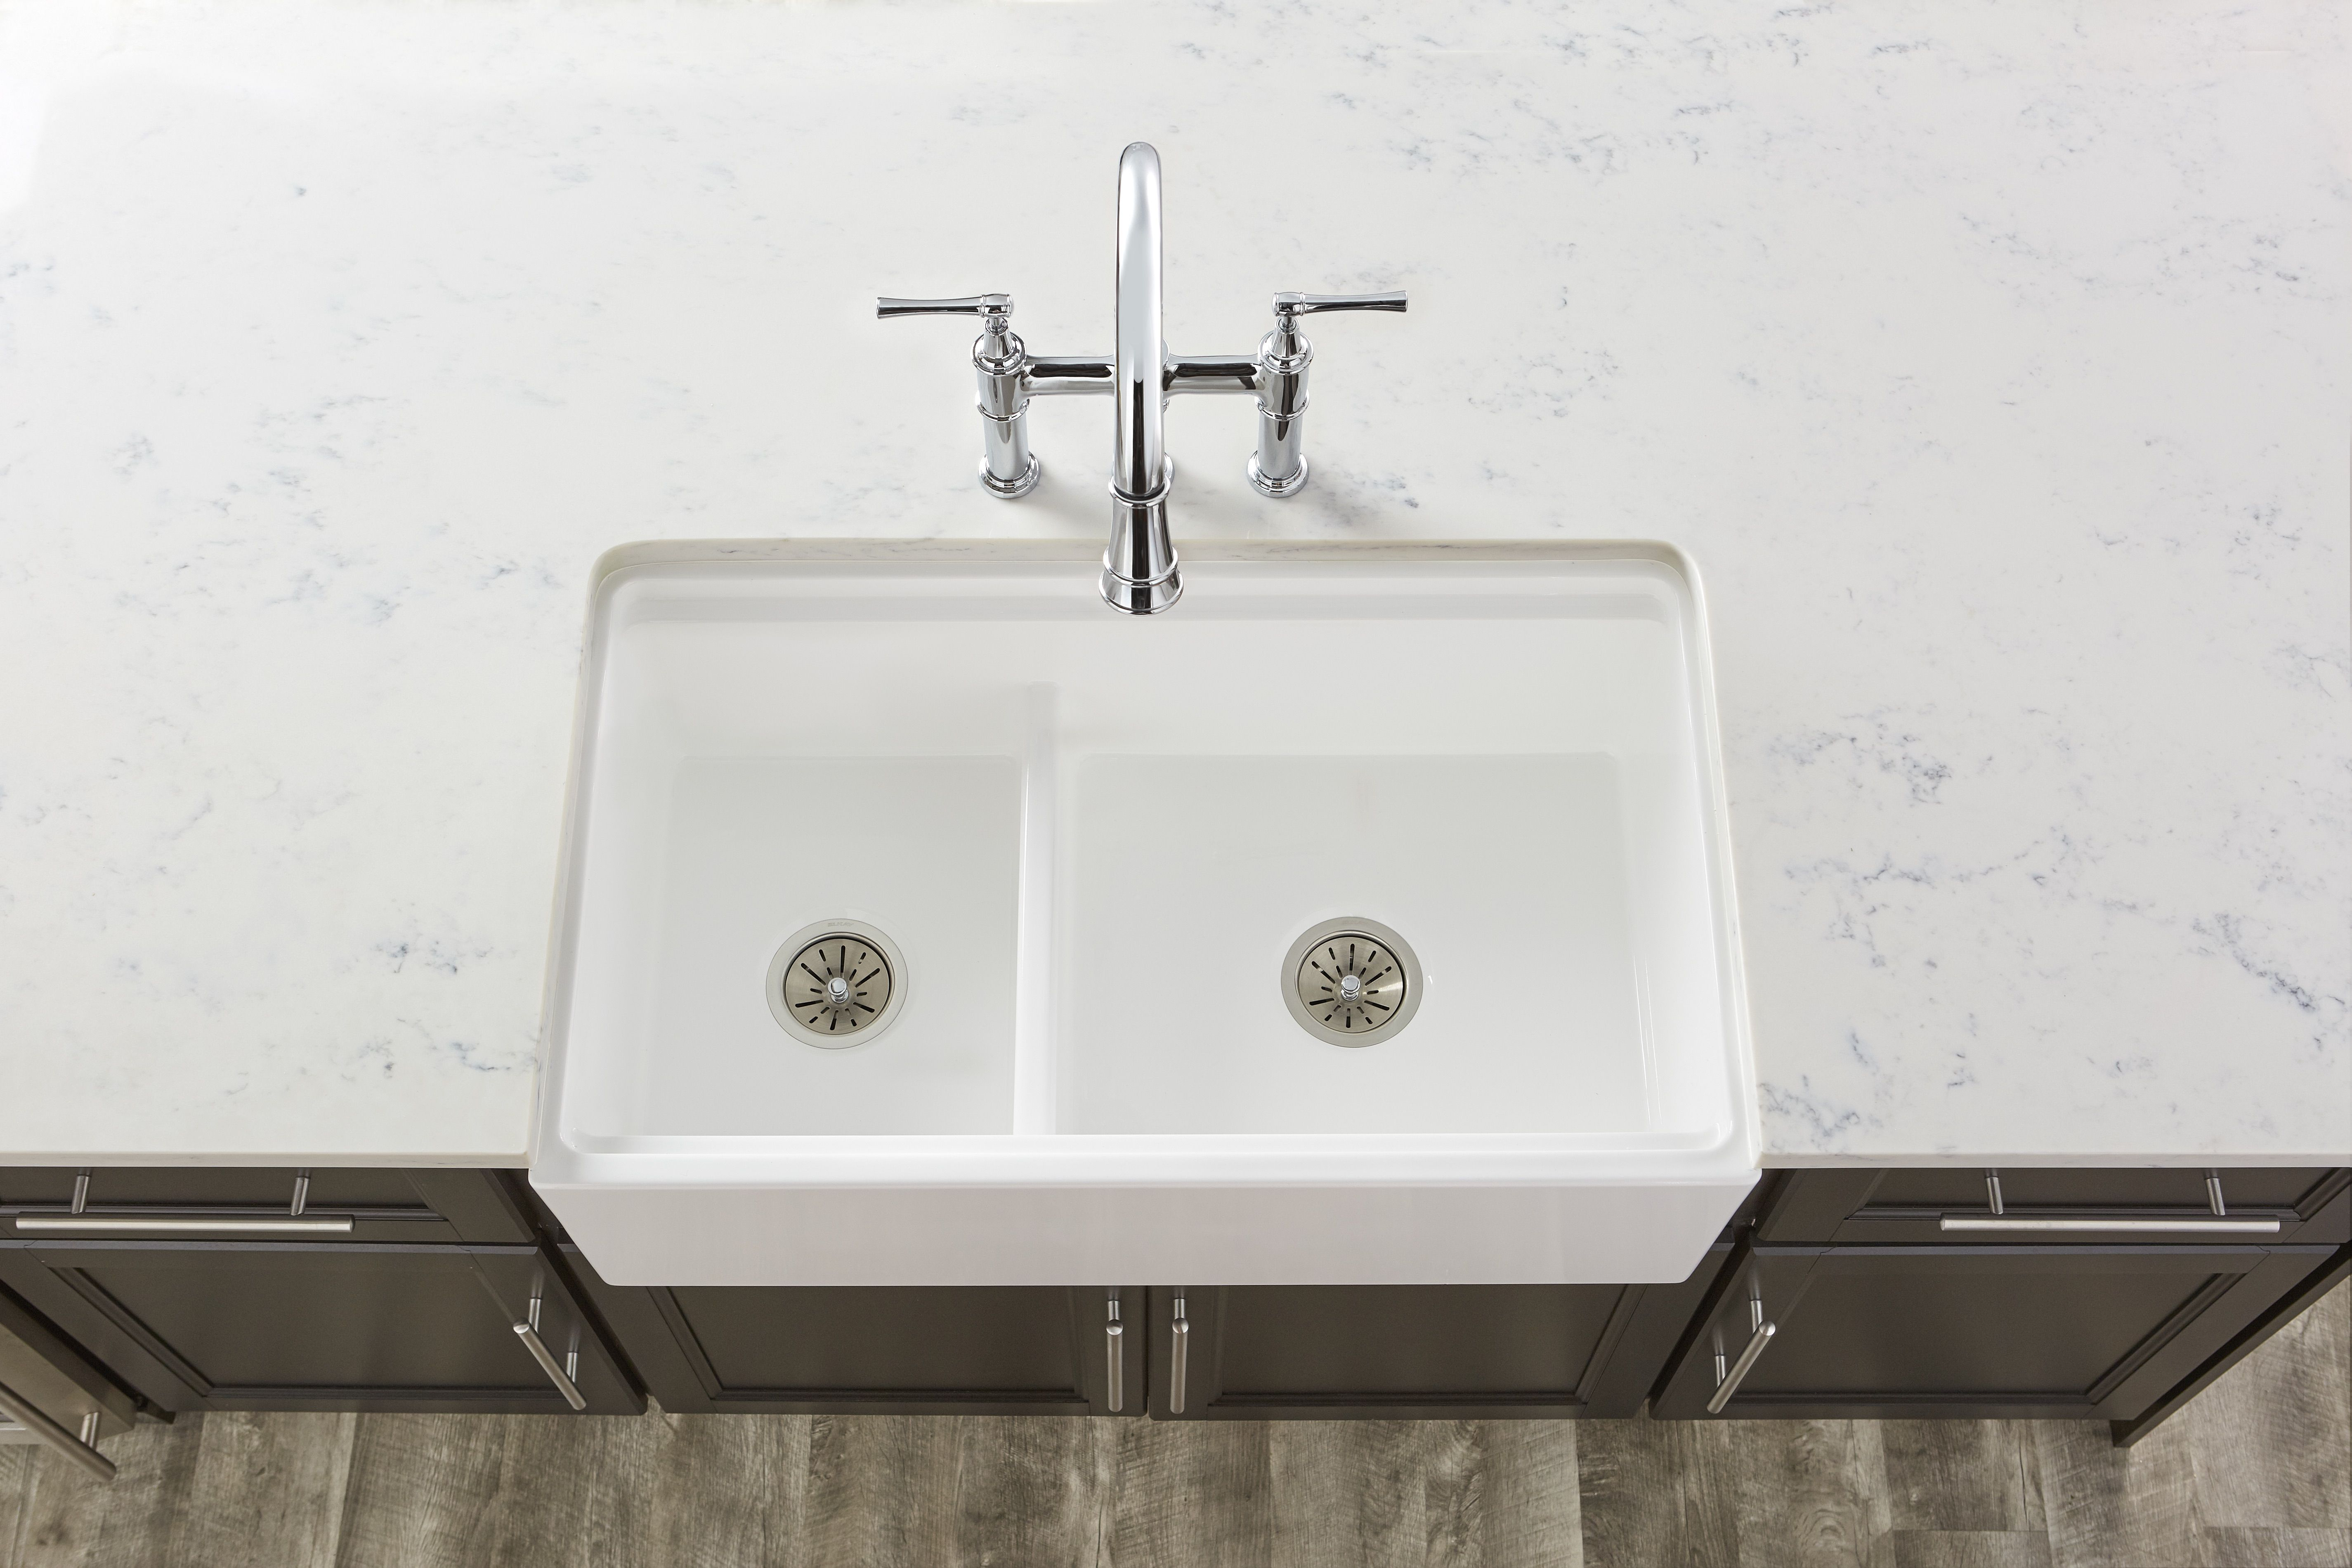 Explore Three Hole Bridge Faucet with Pull-down Spray and Lever ...